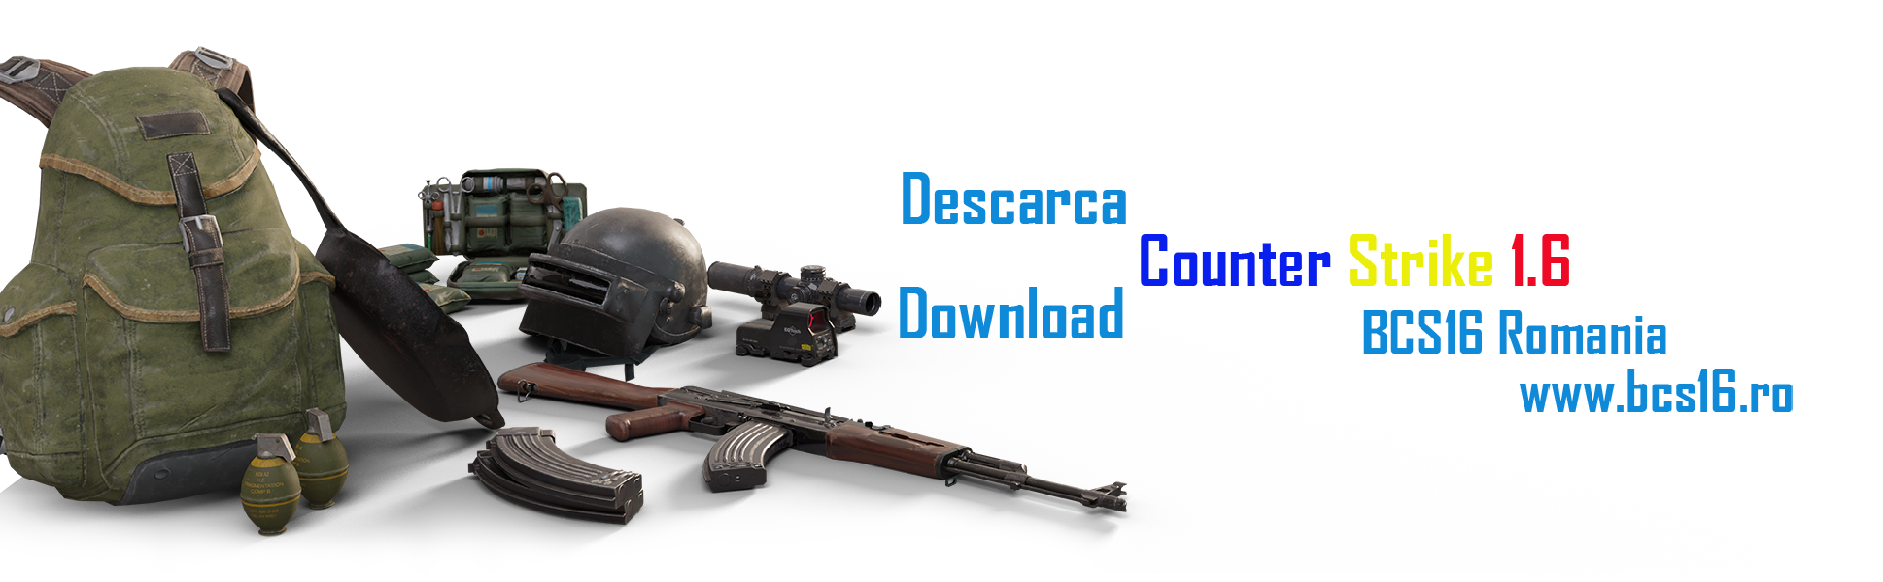 Descarca/Download CS Counter-Strike 1.6 - Bcs16 Romania